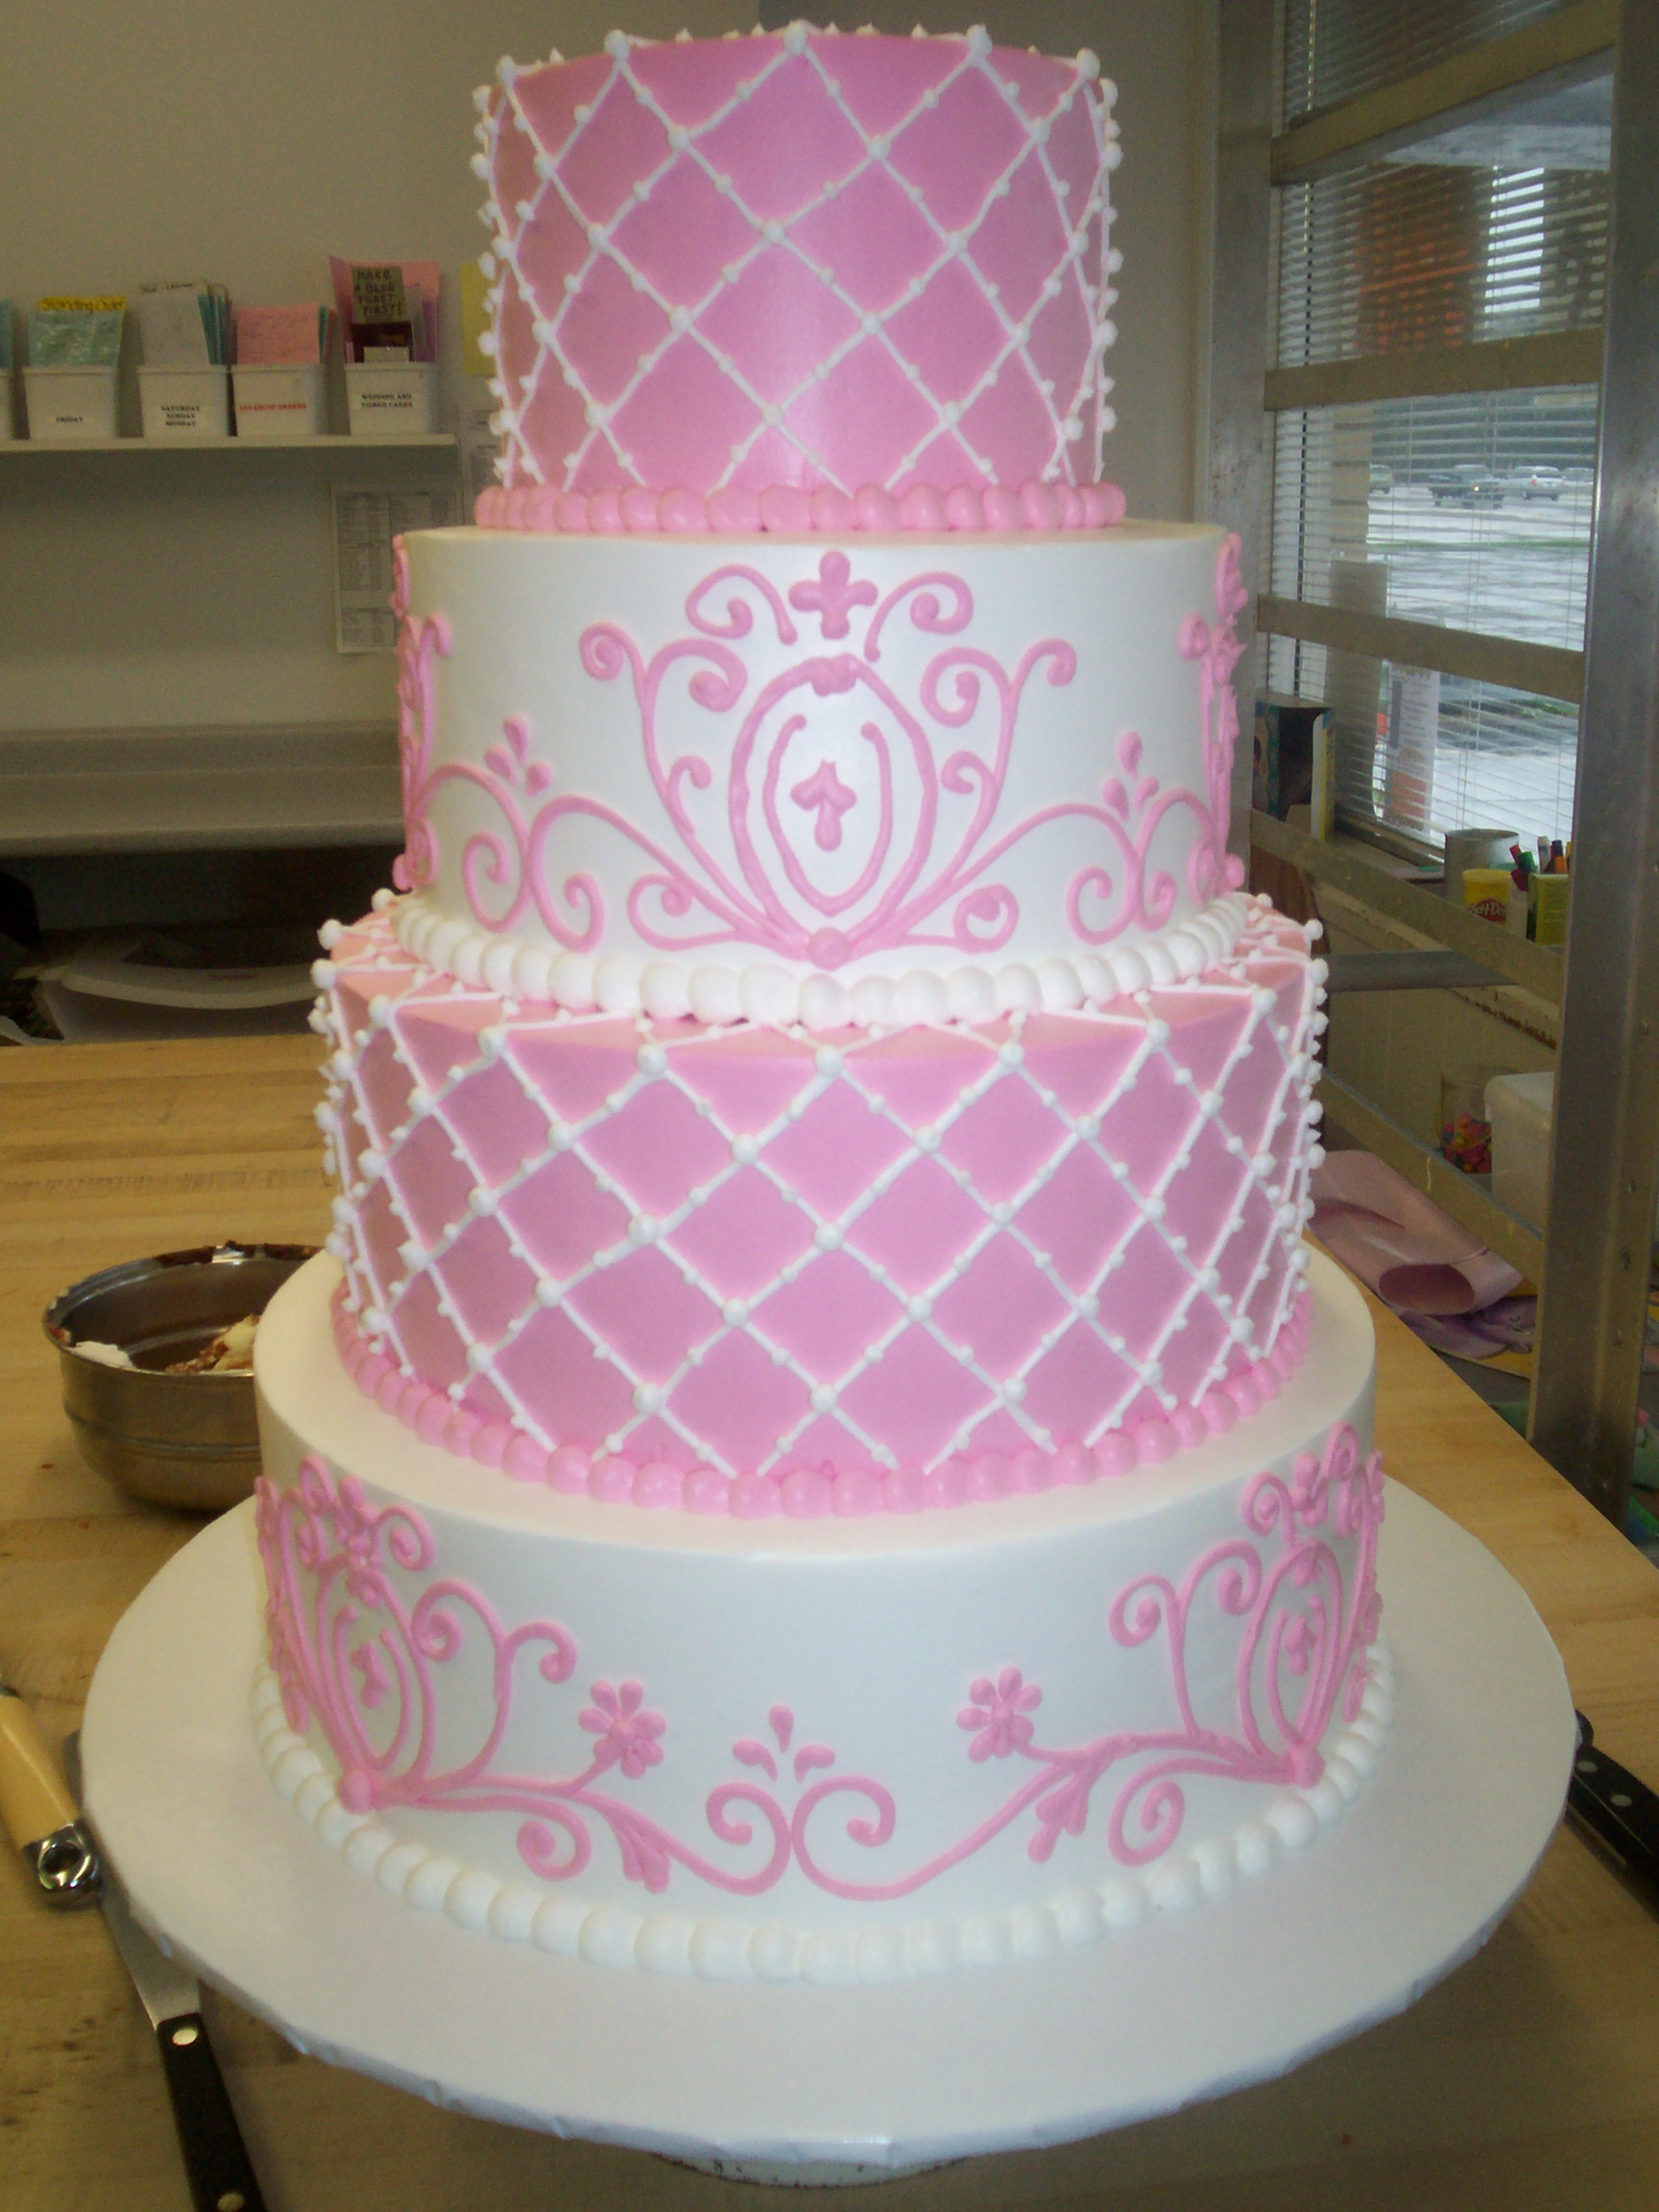 Southwest Michigan Stevensville St Joseph MI Bakery Wedding Birthday ...